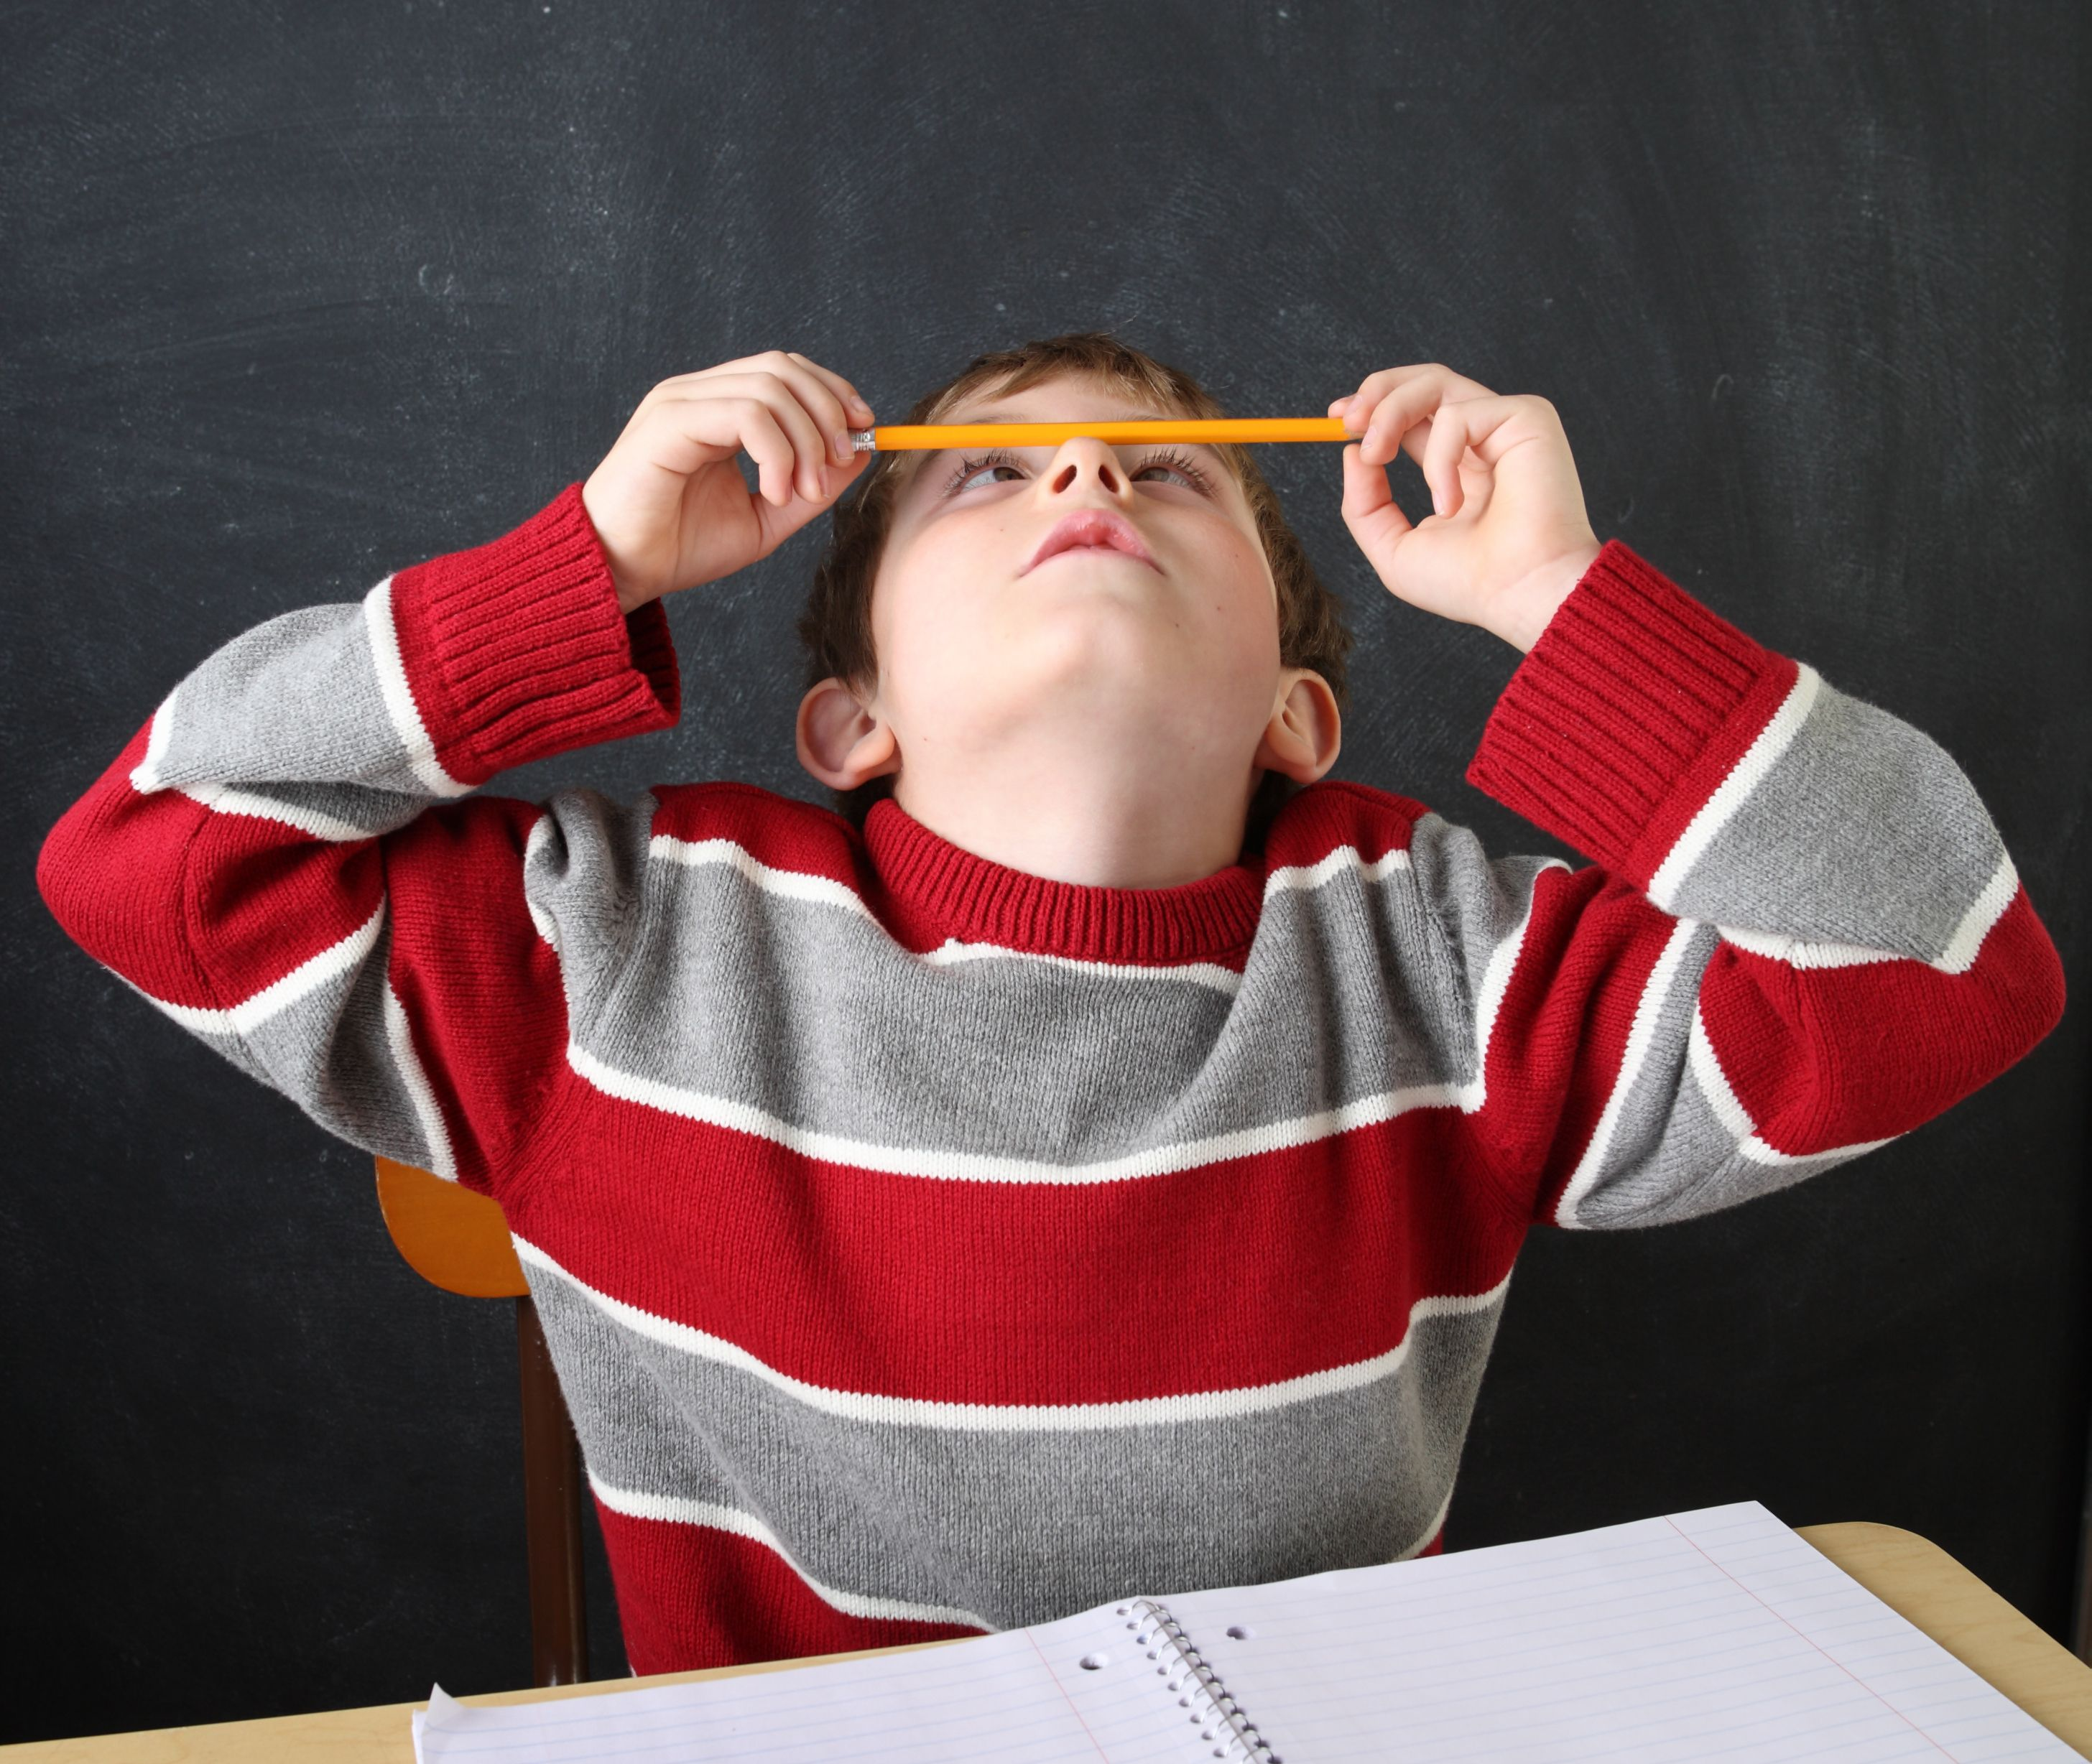 Does your child have #ADHD? - Read this article to find out about a